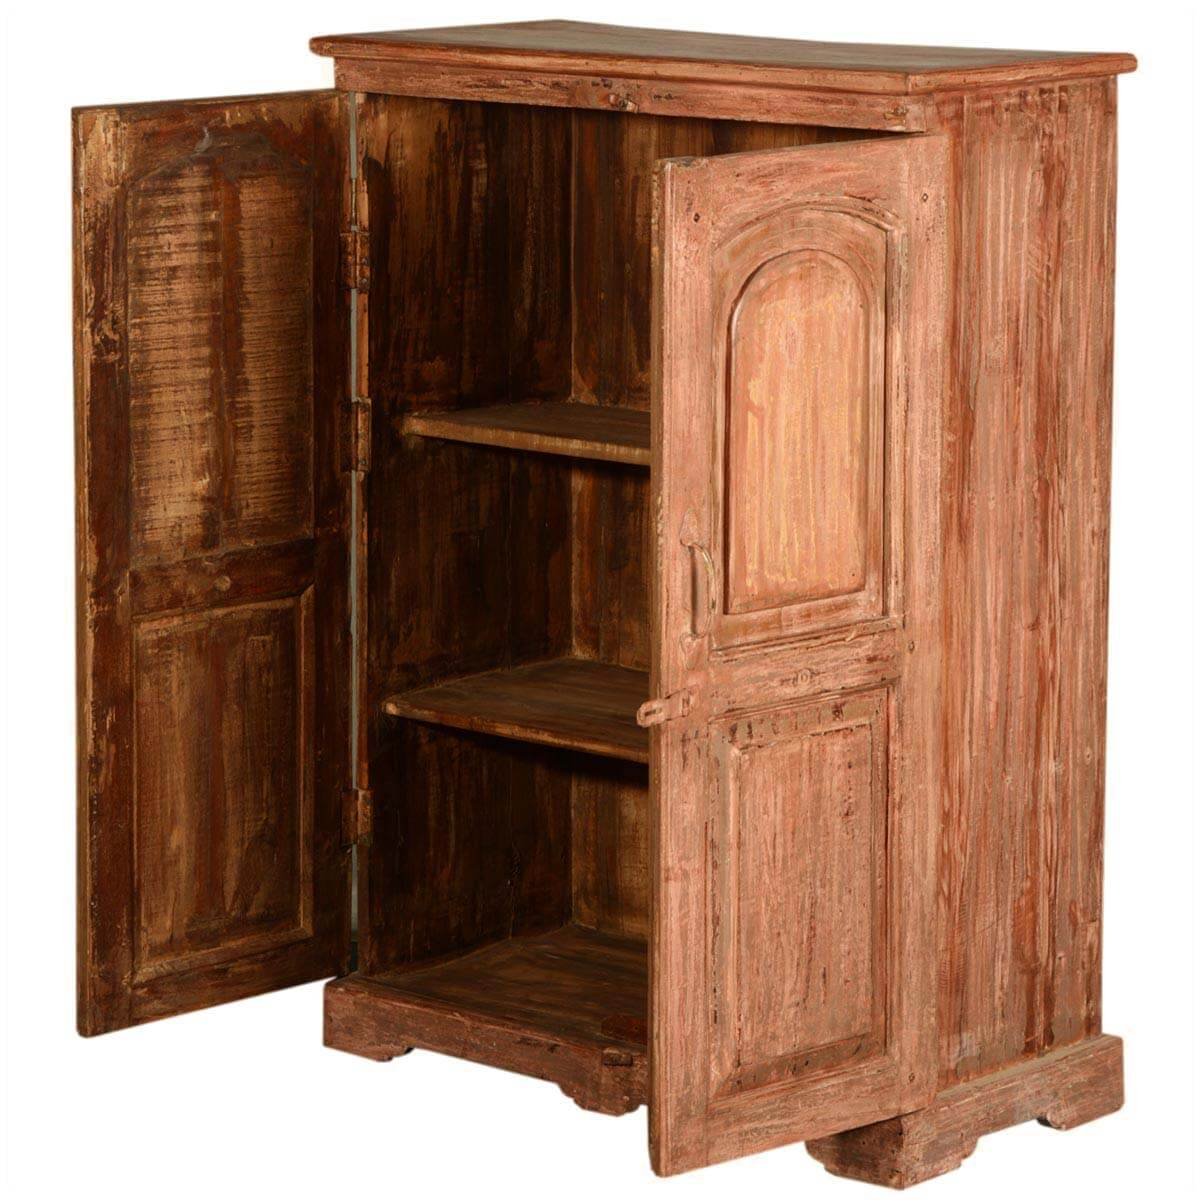 Wooden Storage Cabinets ~ New orleans rustic reclaimed wood storage cabinet armoire